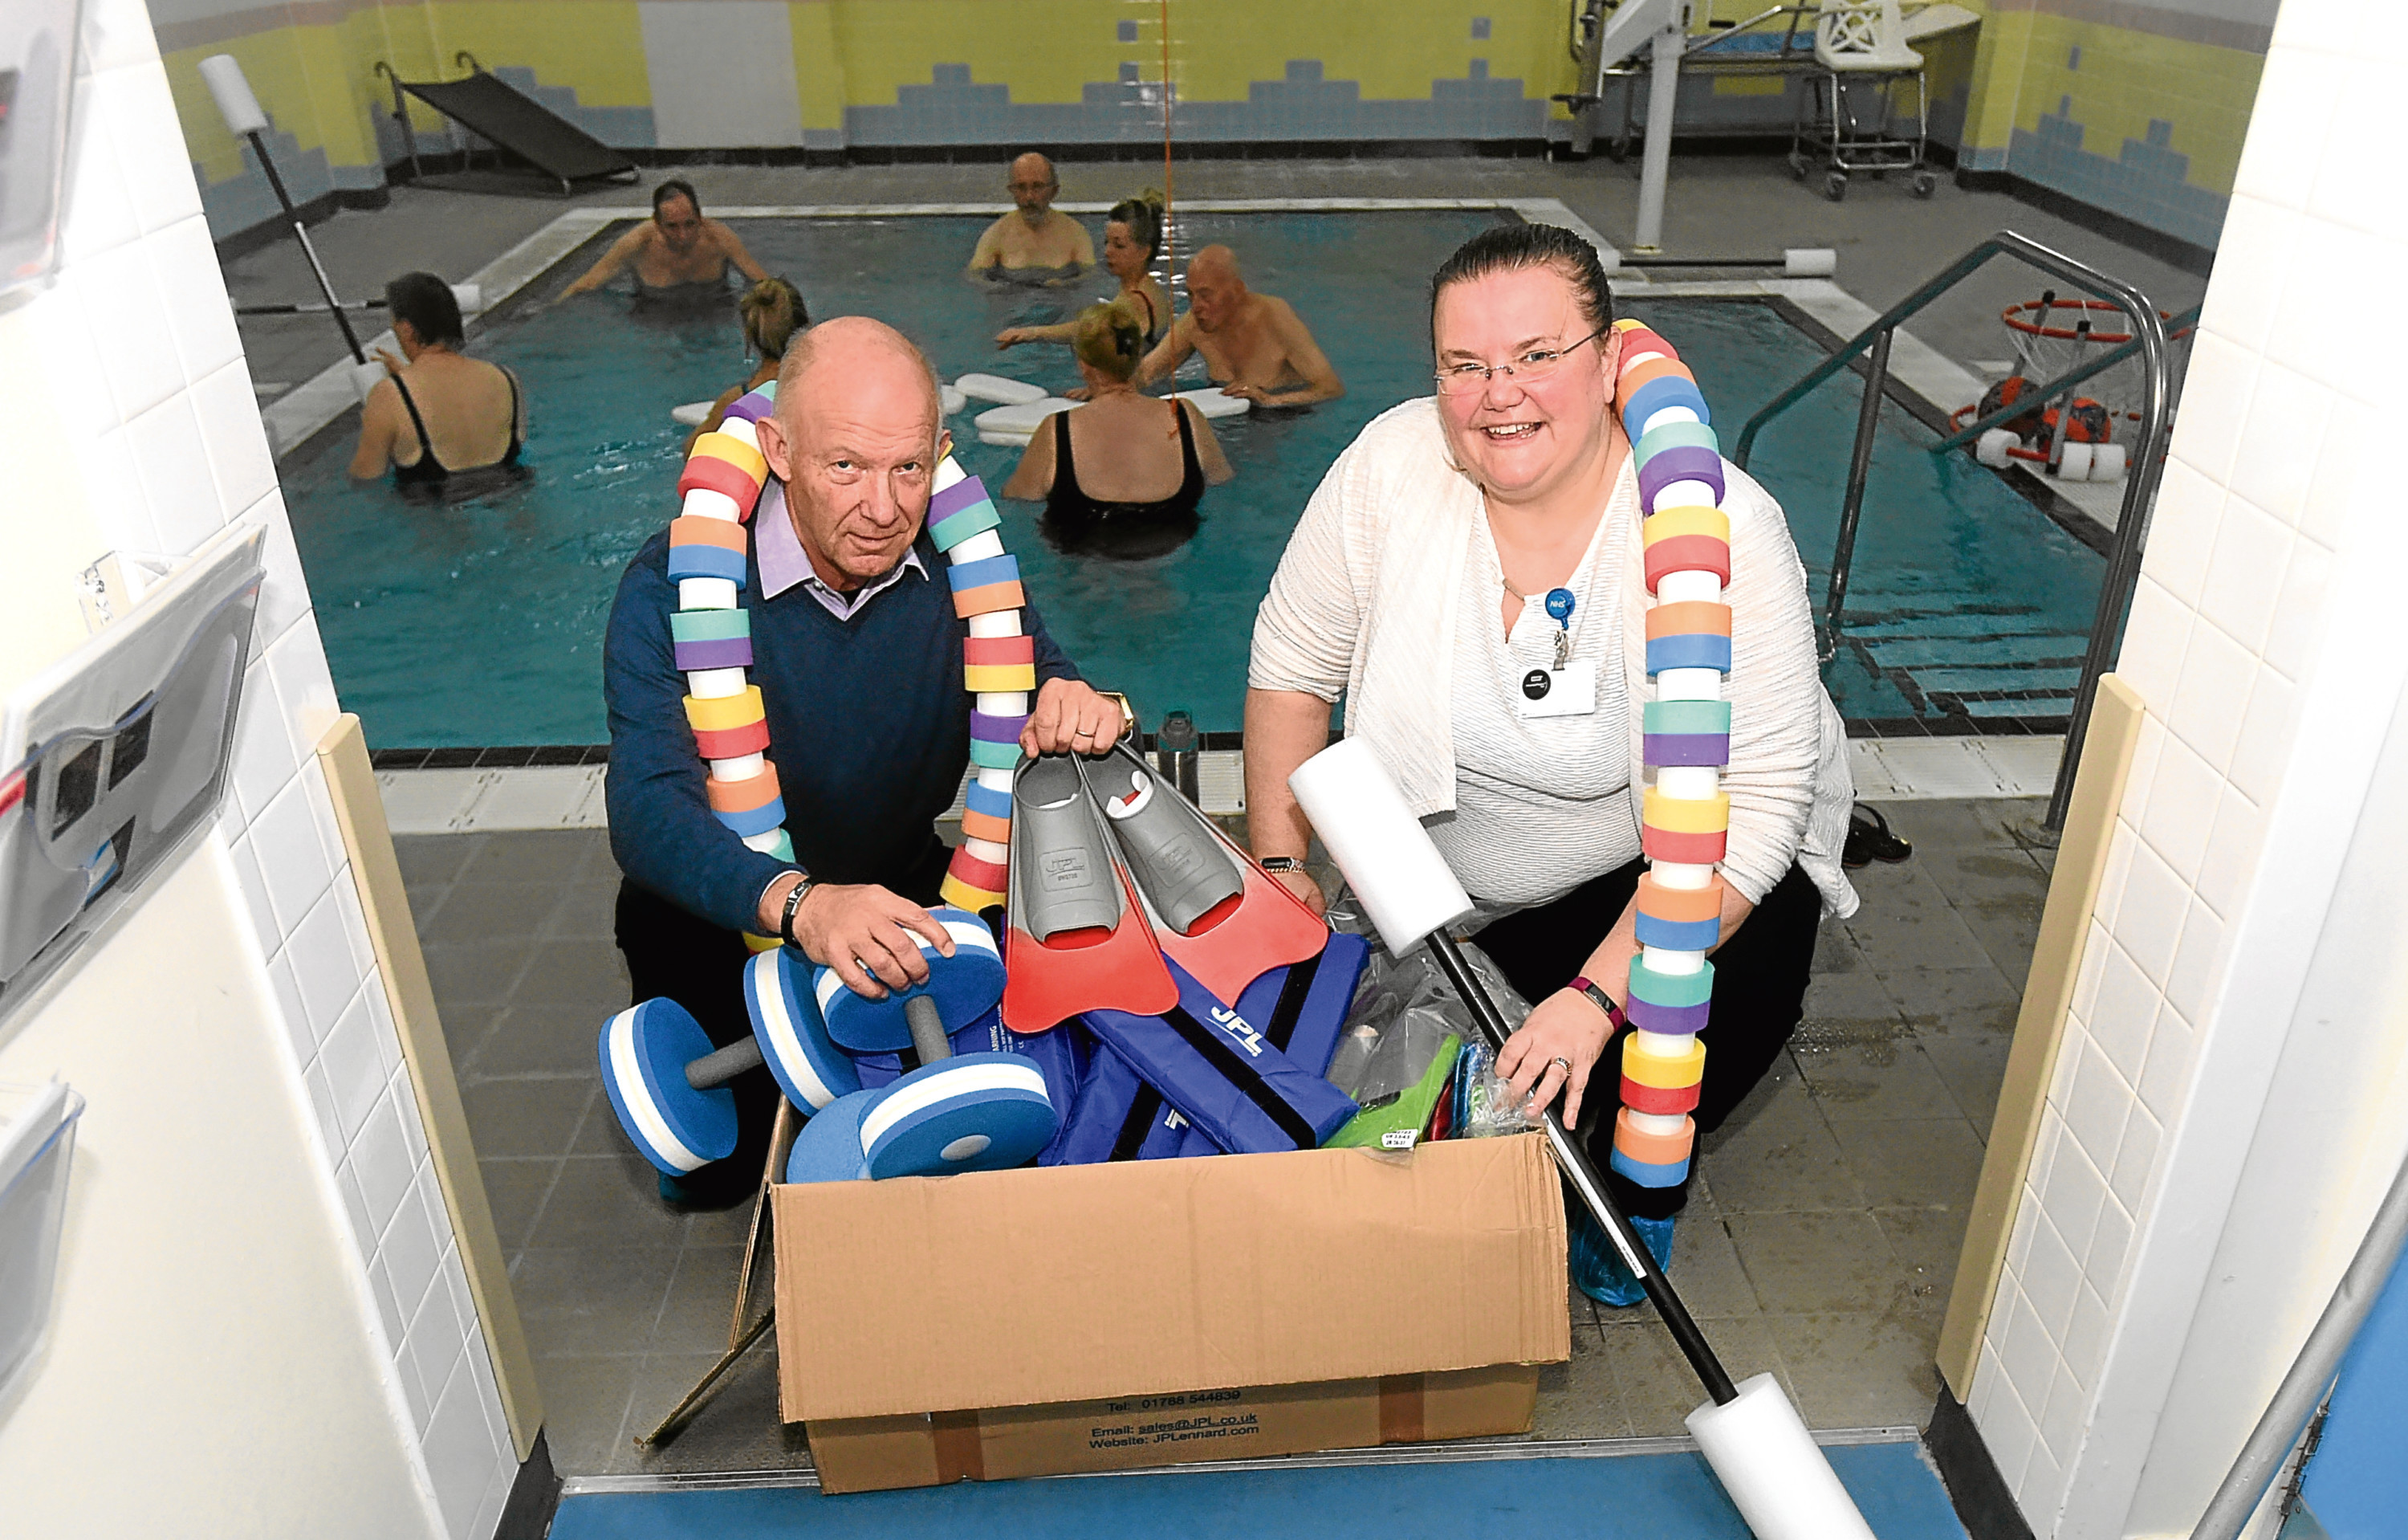 Peter Fogiel and Catriona Cameron with the donated equipment